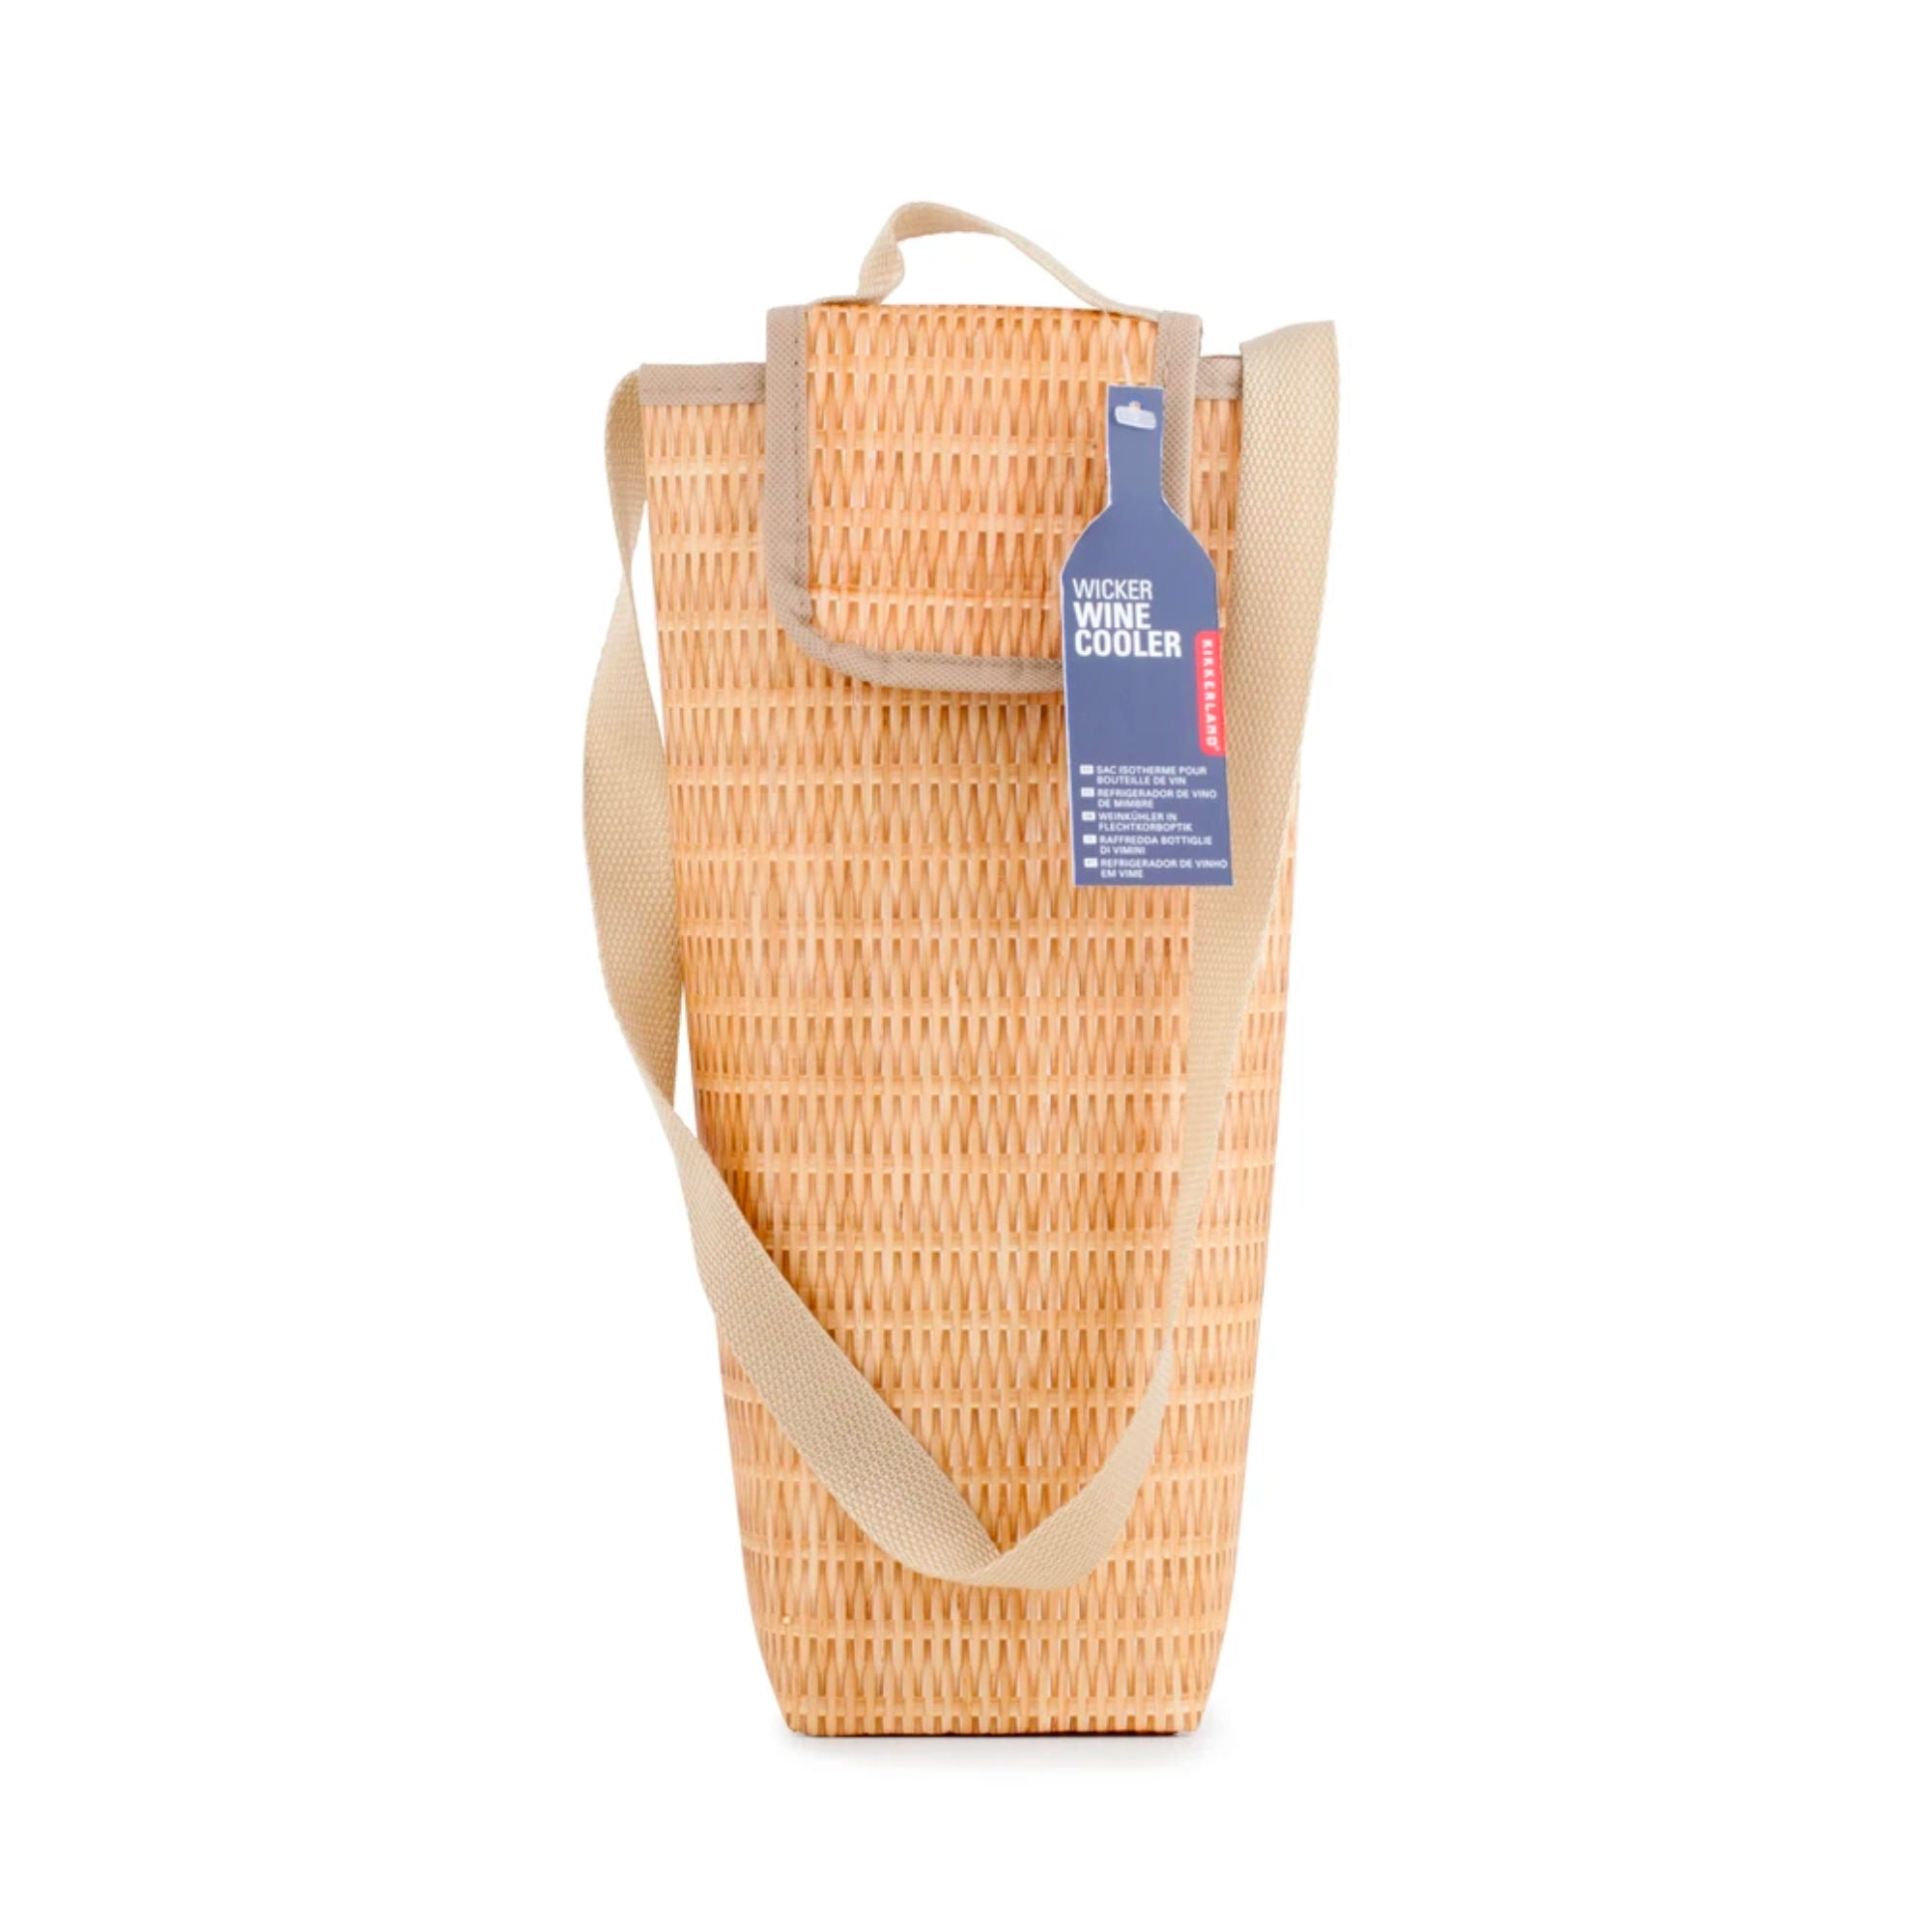 Kikkerland Wicker Wine Cooler